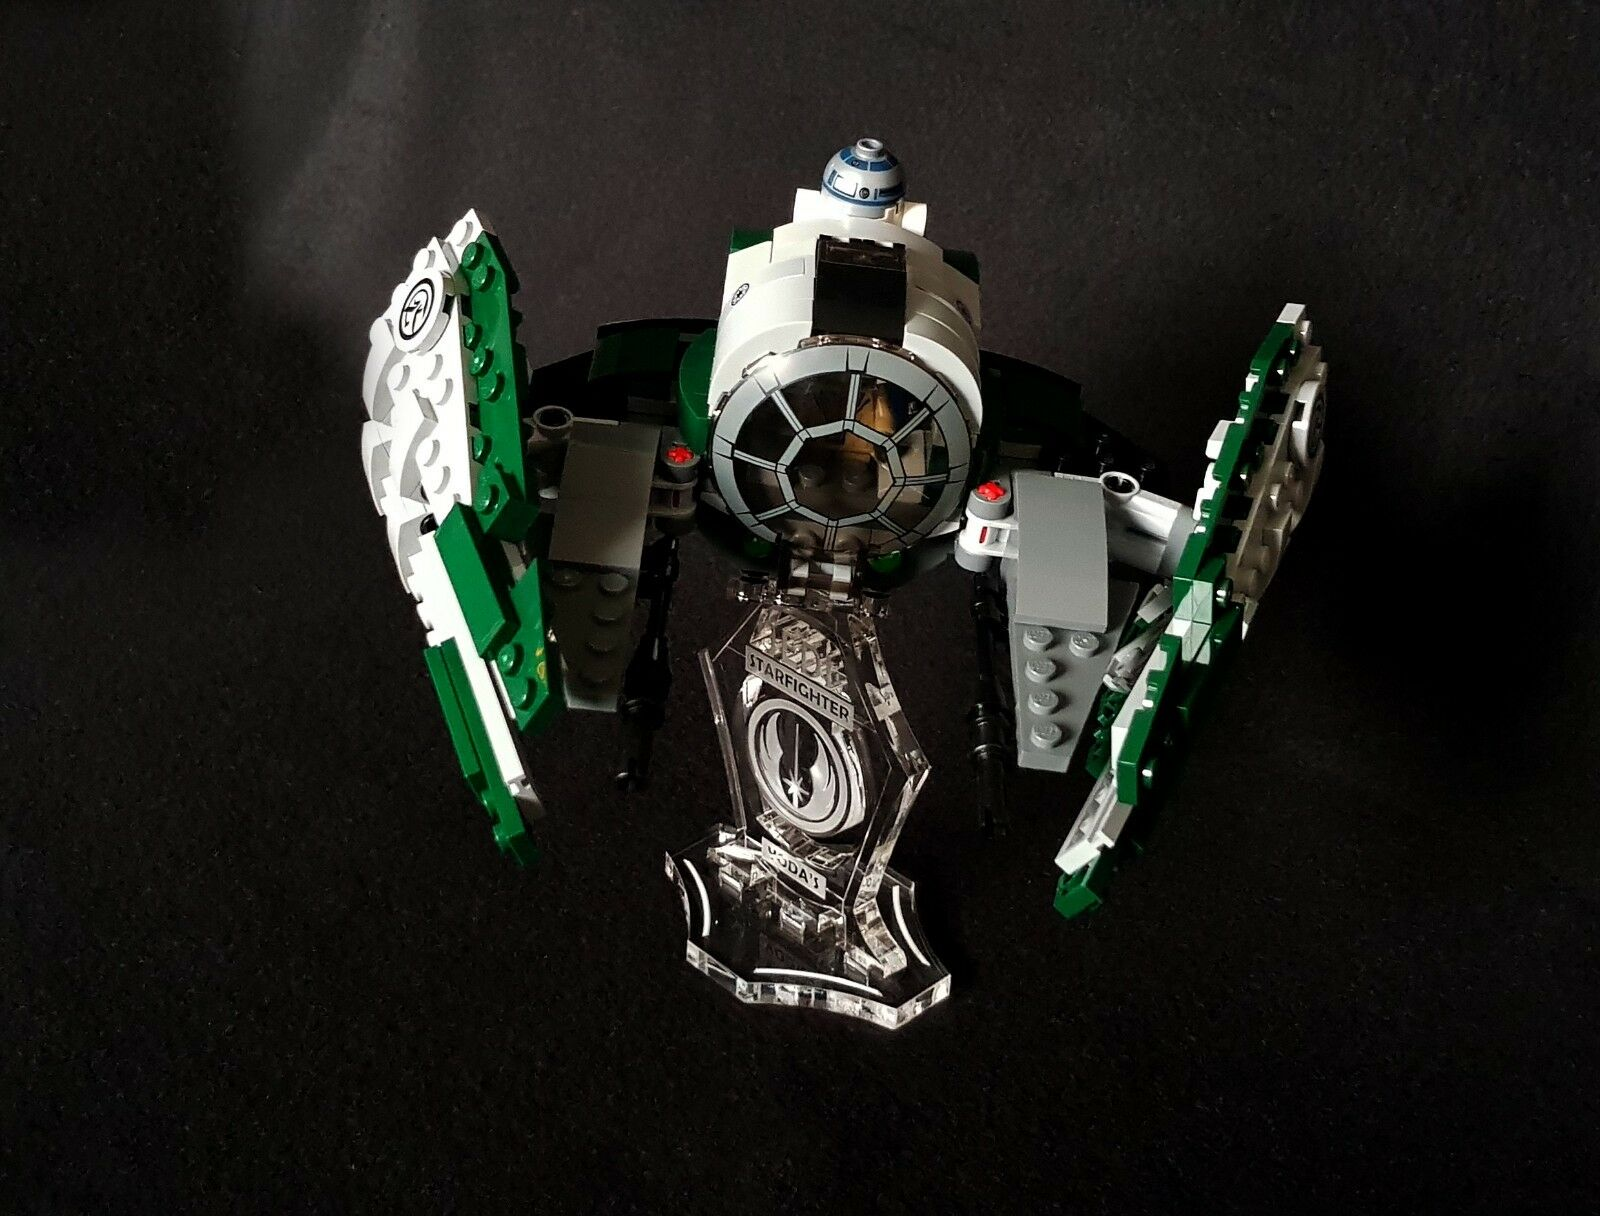 slots for Lego 75179 Kylo Ren/'s Tie Fighter Star Wars Display stand 3D angled